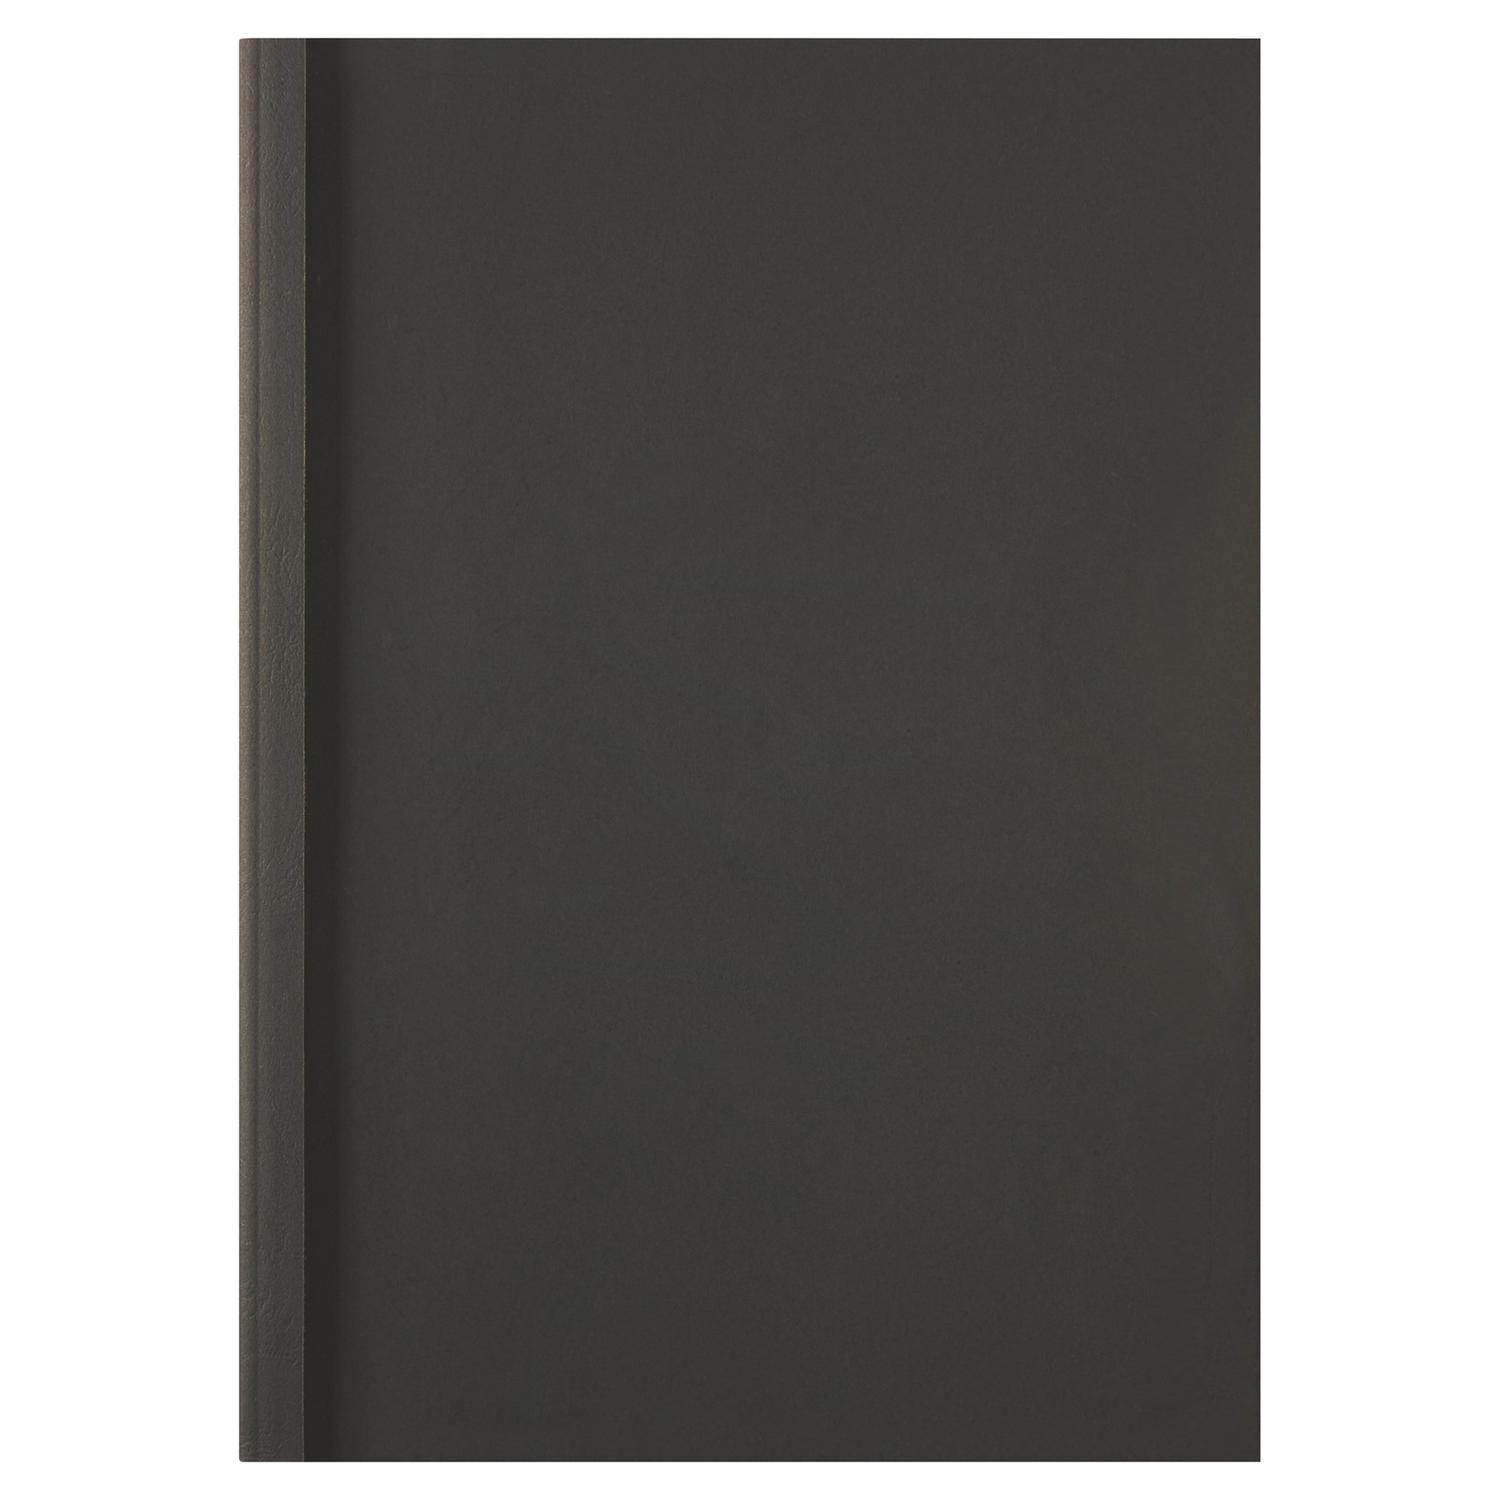 GBC A4 Thermal Binding Covers 1.5mm Leathergrain Black PK100